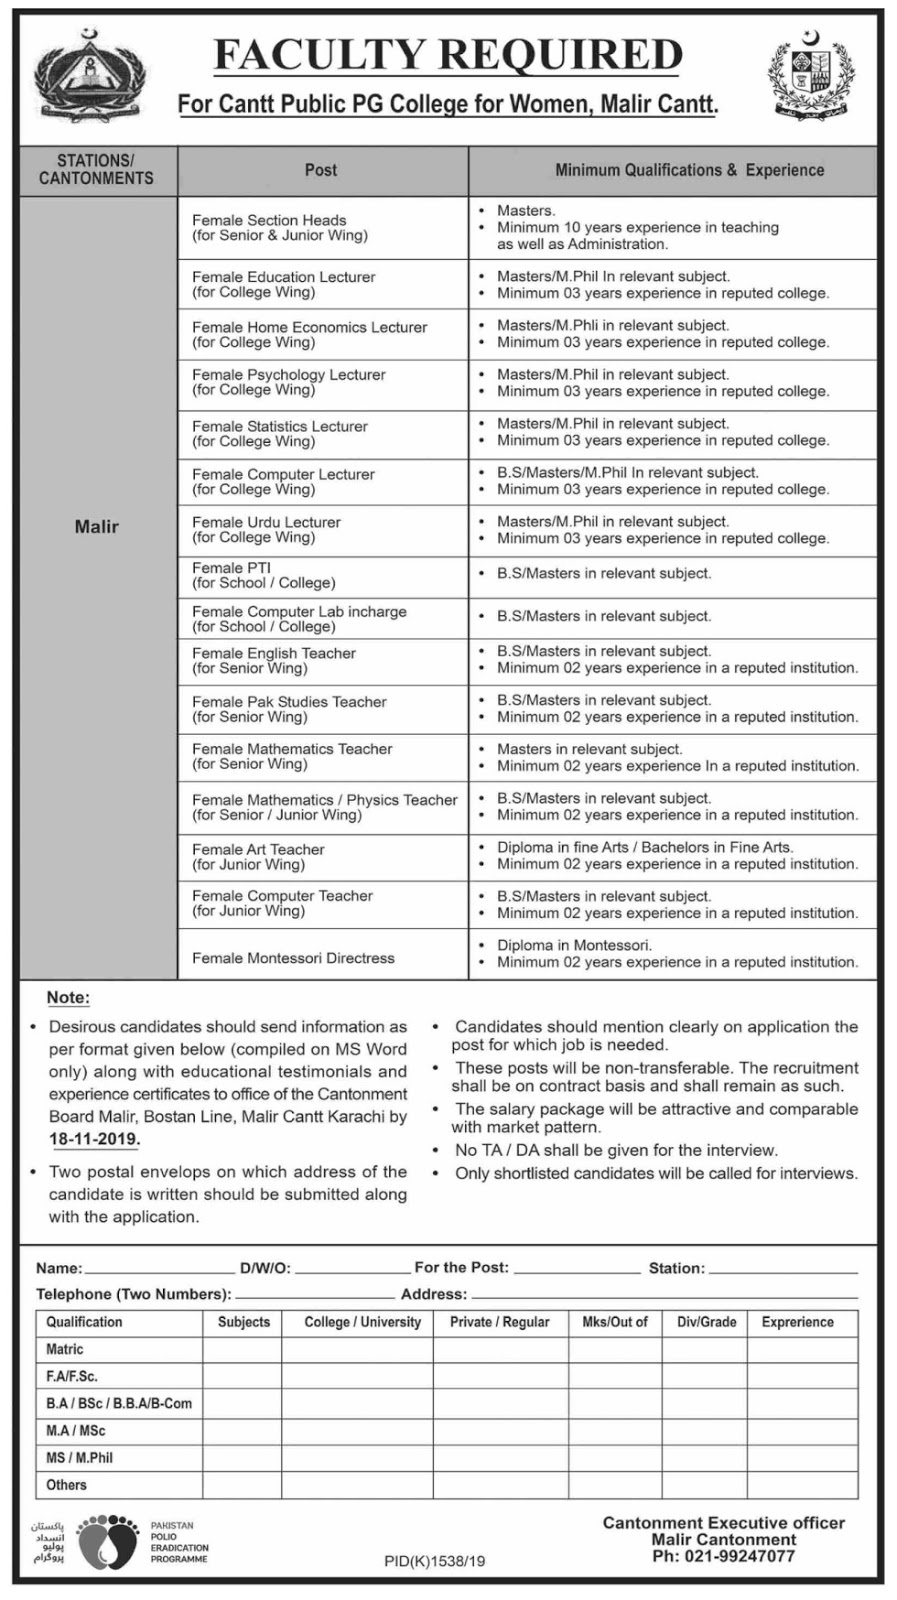 Cantt Public PG College for Women Malir Cantt Jobs 2019